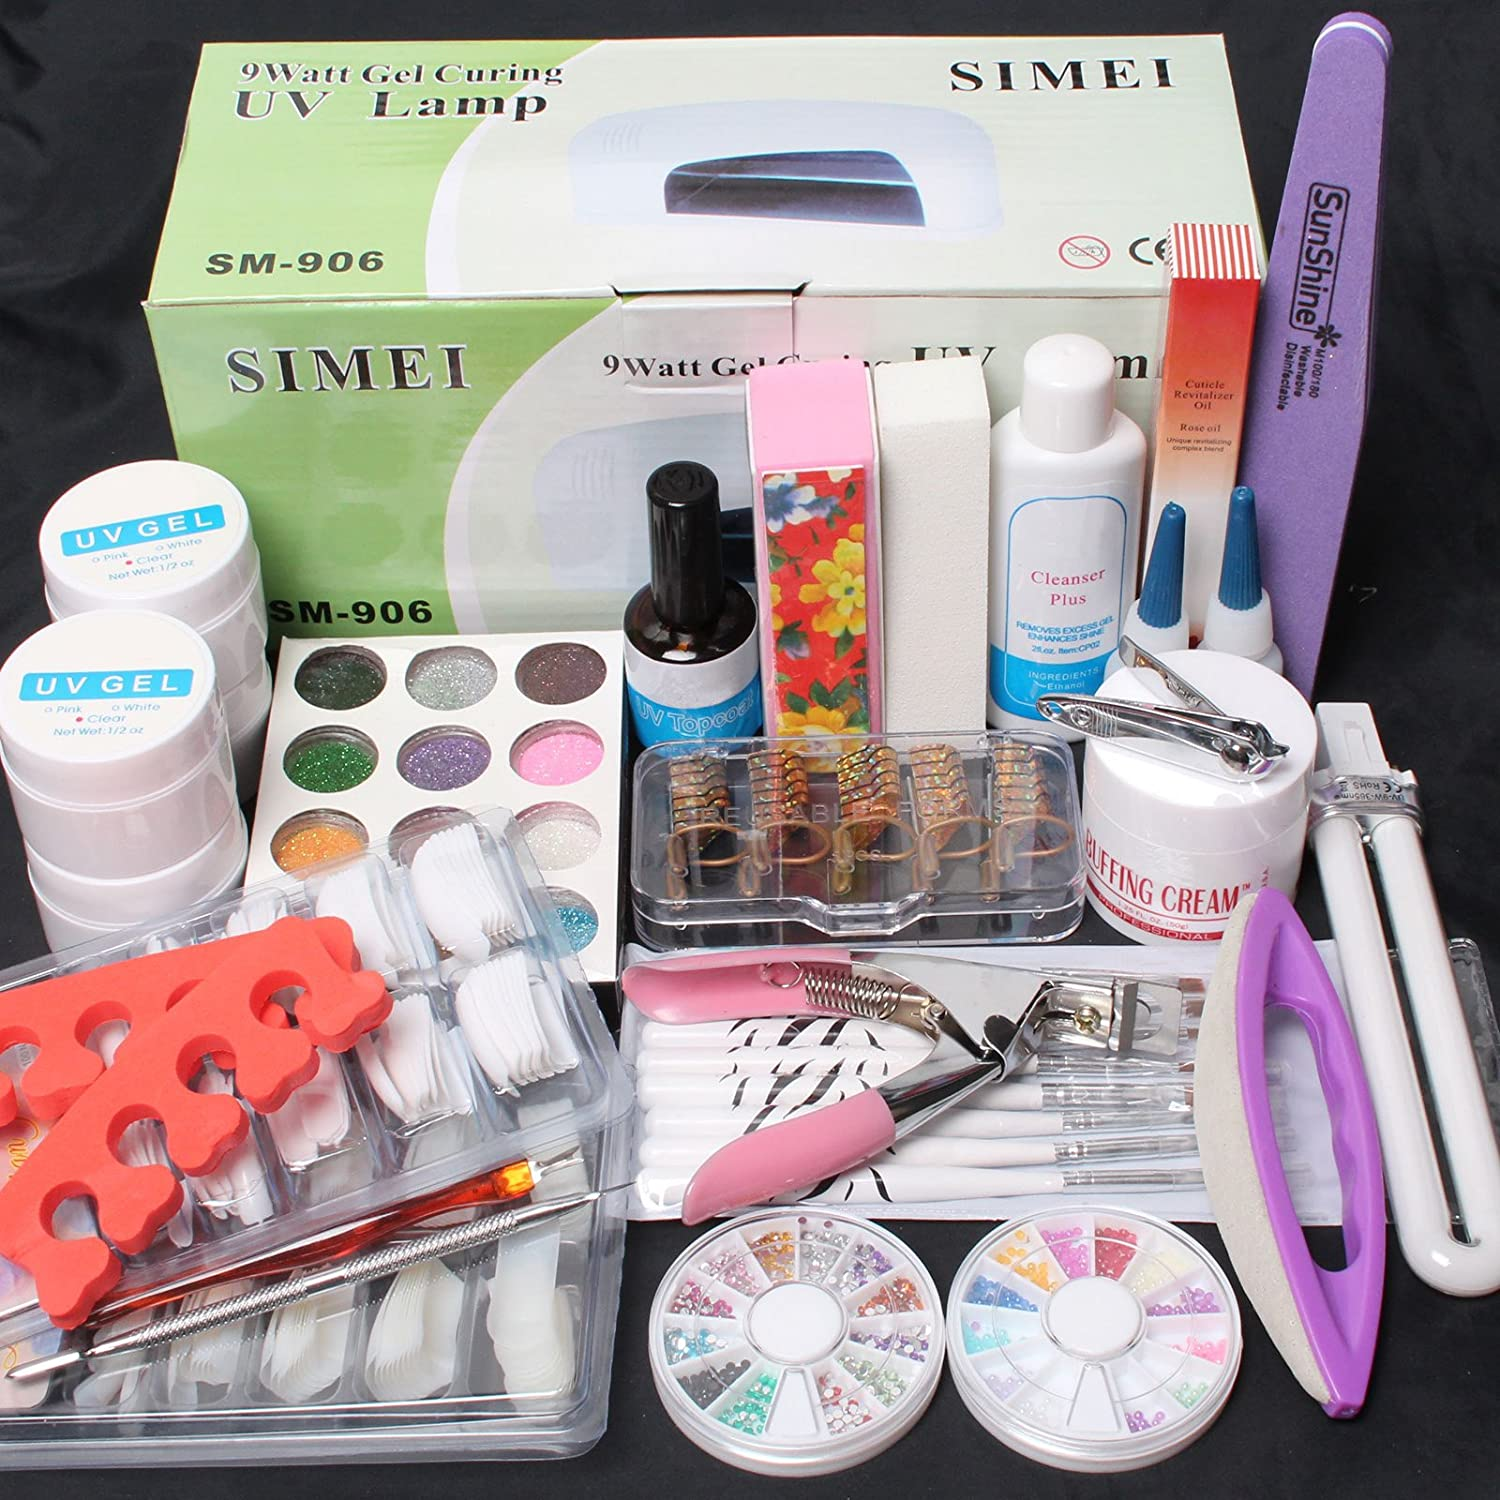 25 in 1 Combo Set Professional DIY UV Gel Nail Art Kit 9W Lamp Dryer Brush Buffer Tool Nail Tips Glue Acrylic Set #30